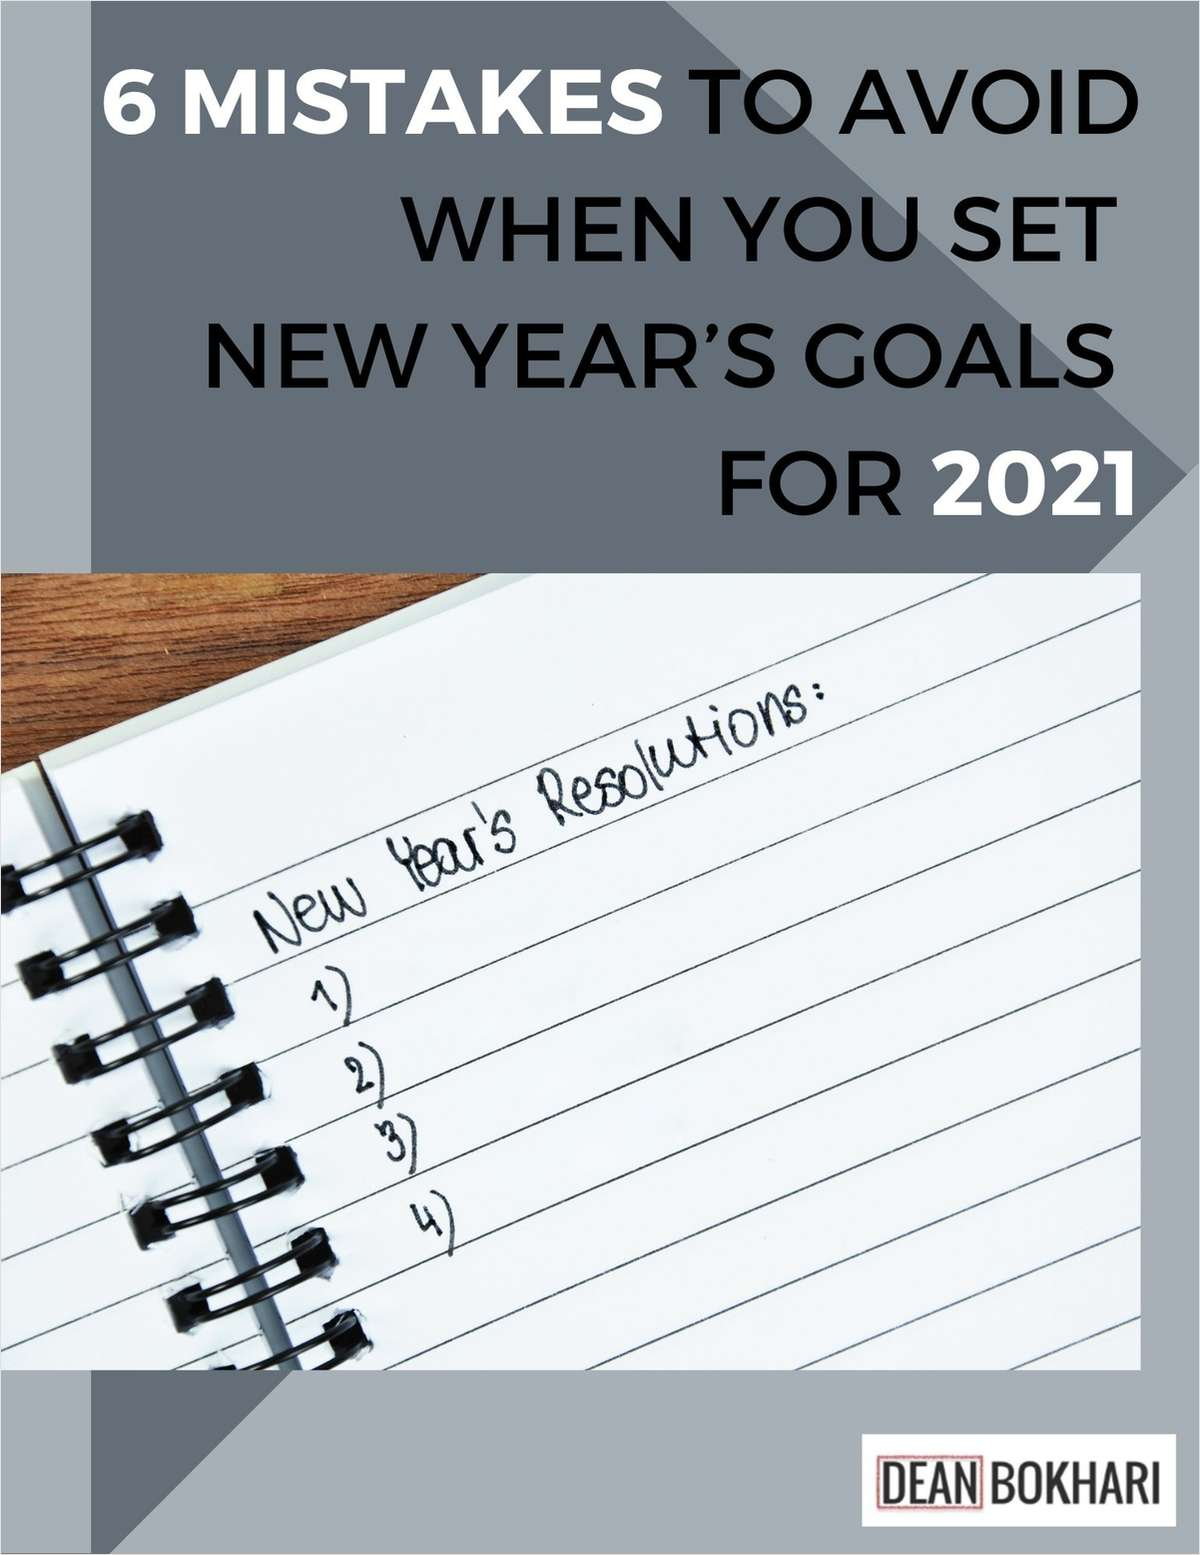 6 Mistakes to Avoid When You Set New Year's Goals for 2021